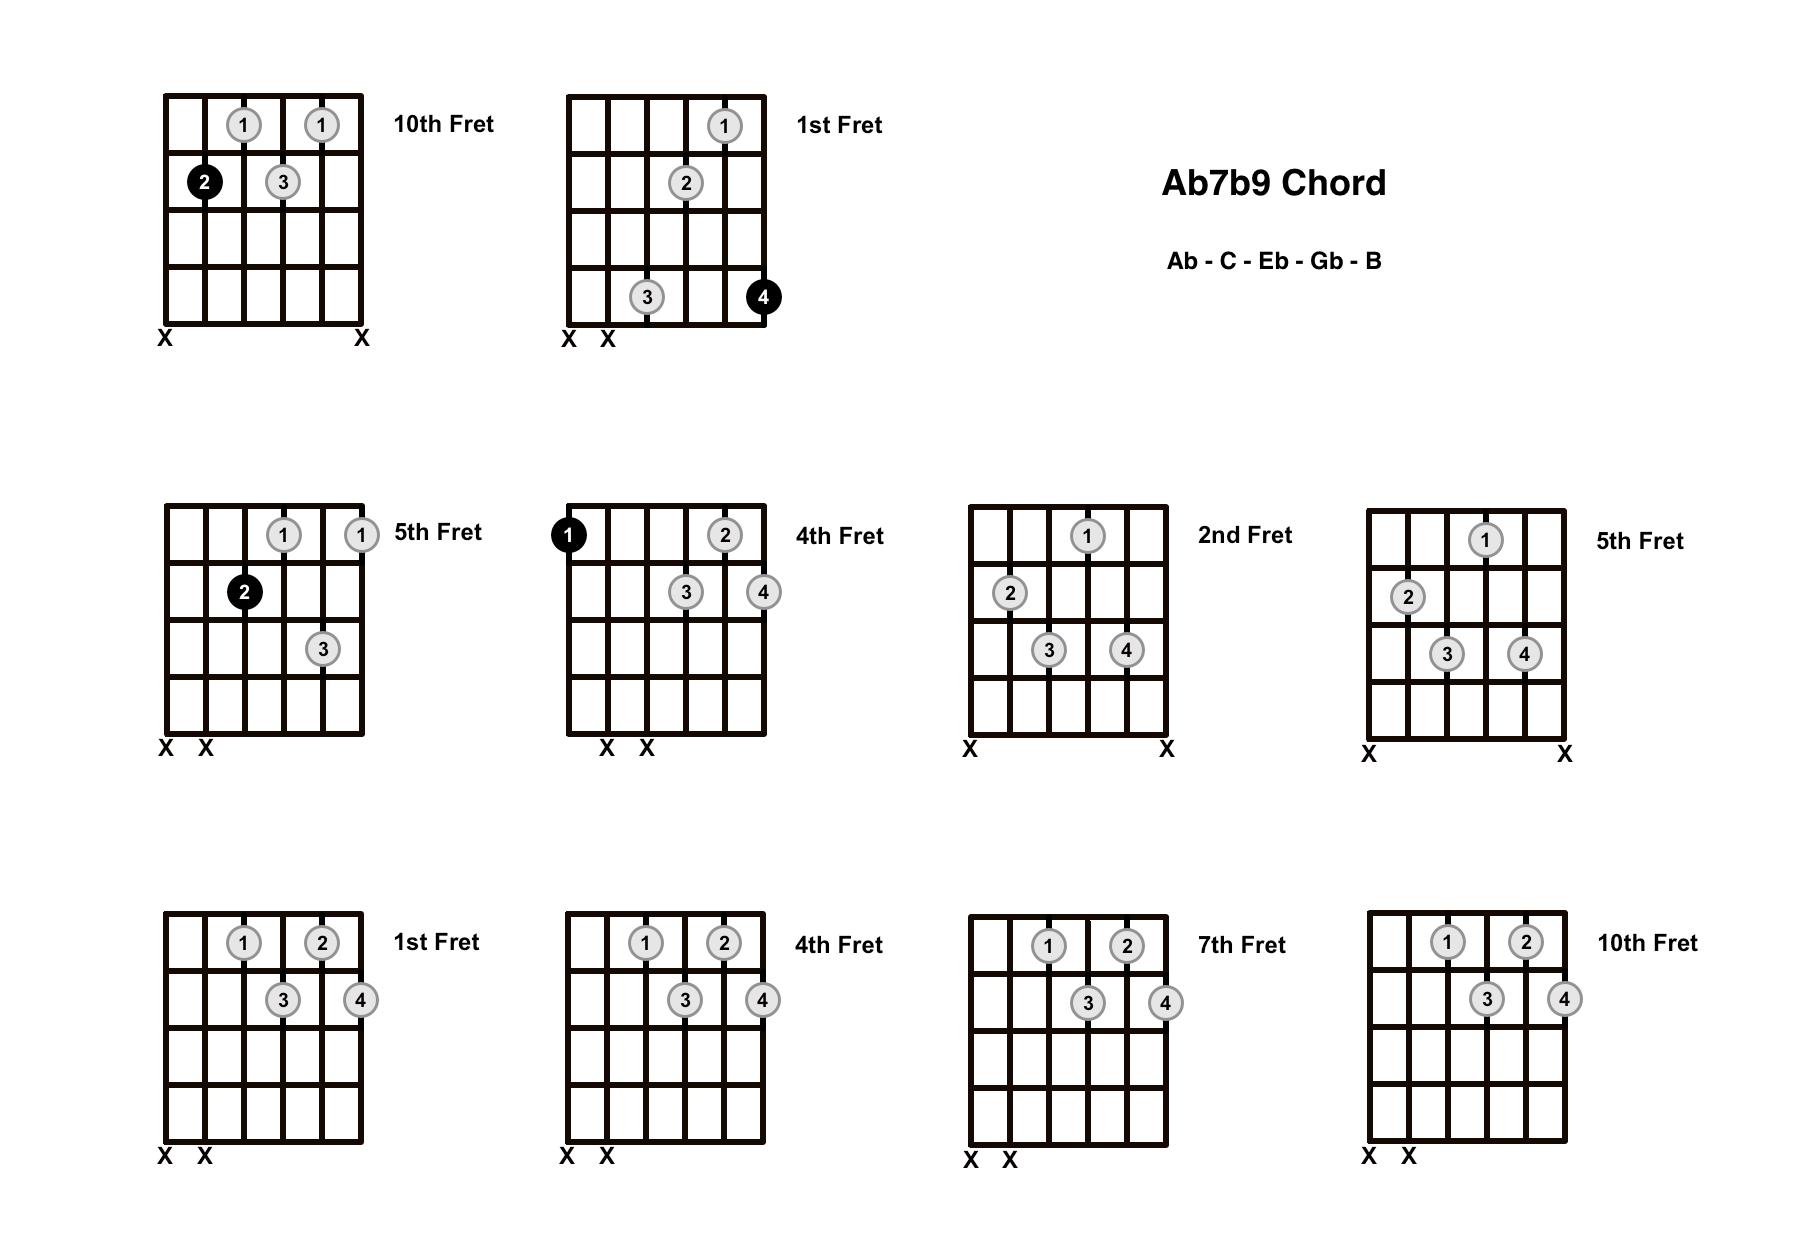 Ab7b9 Chord On The Guitar (A Flat 7 Flat 9) – Diagrams, Finger Positions and Theory